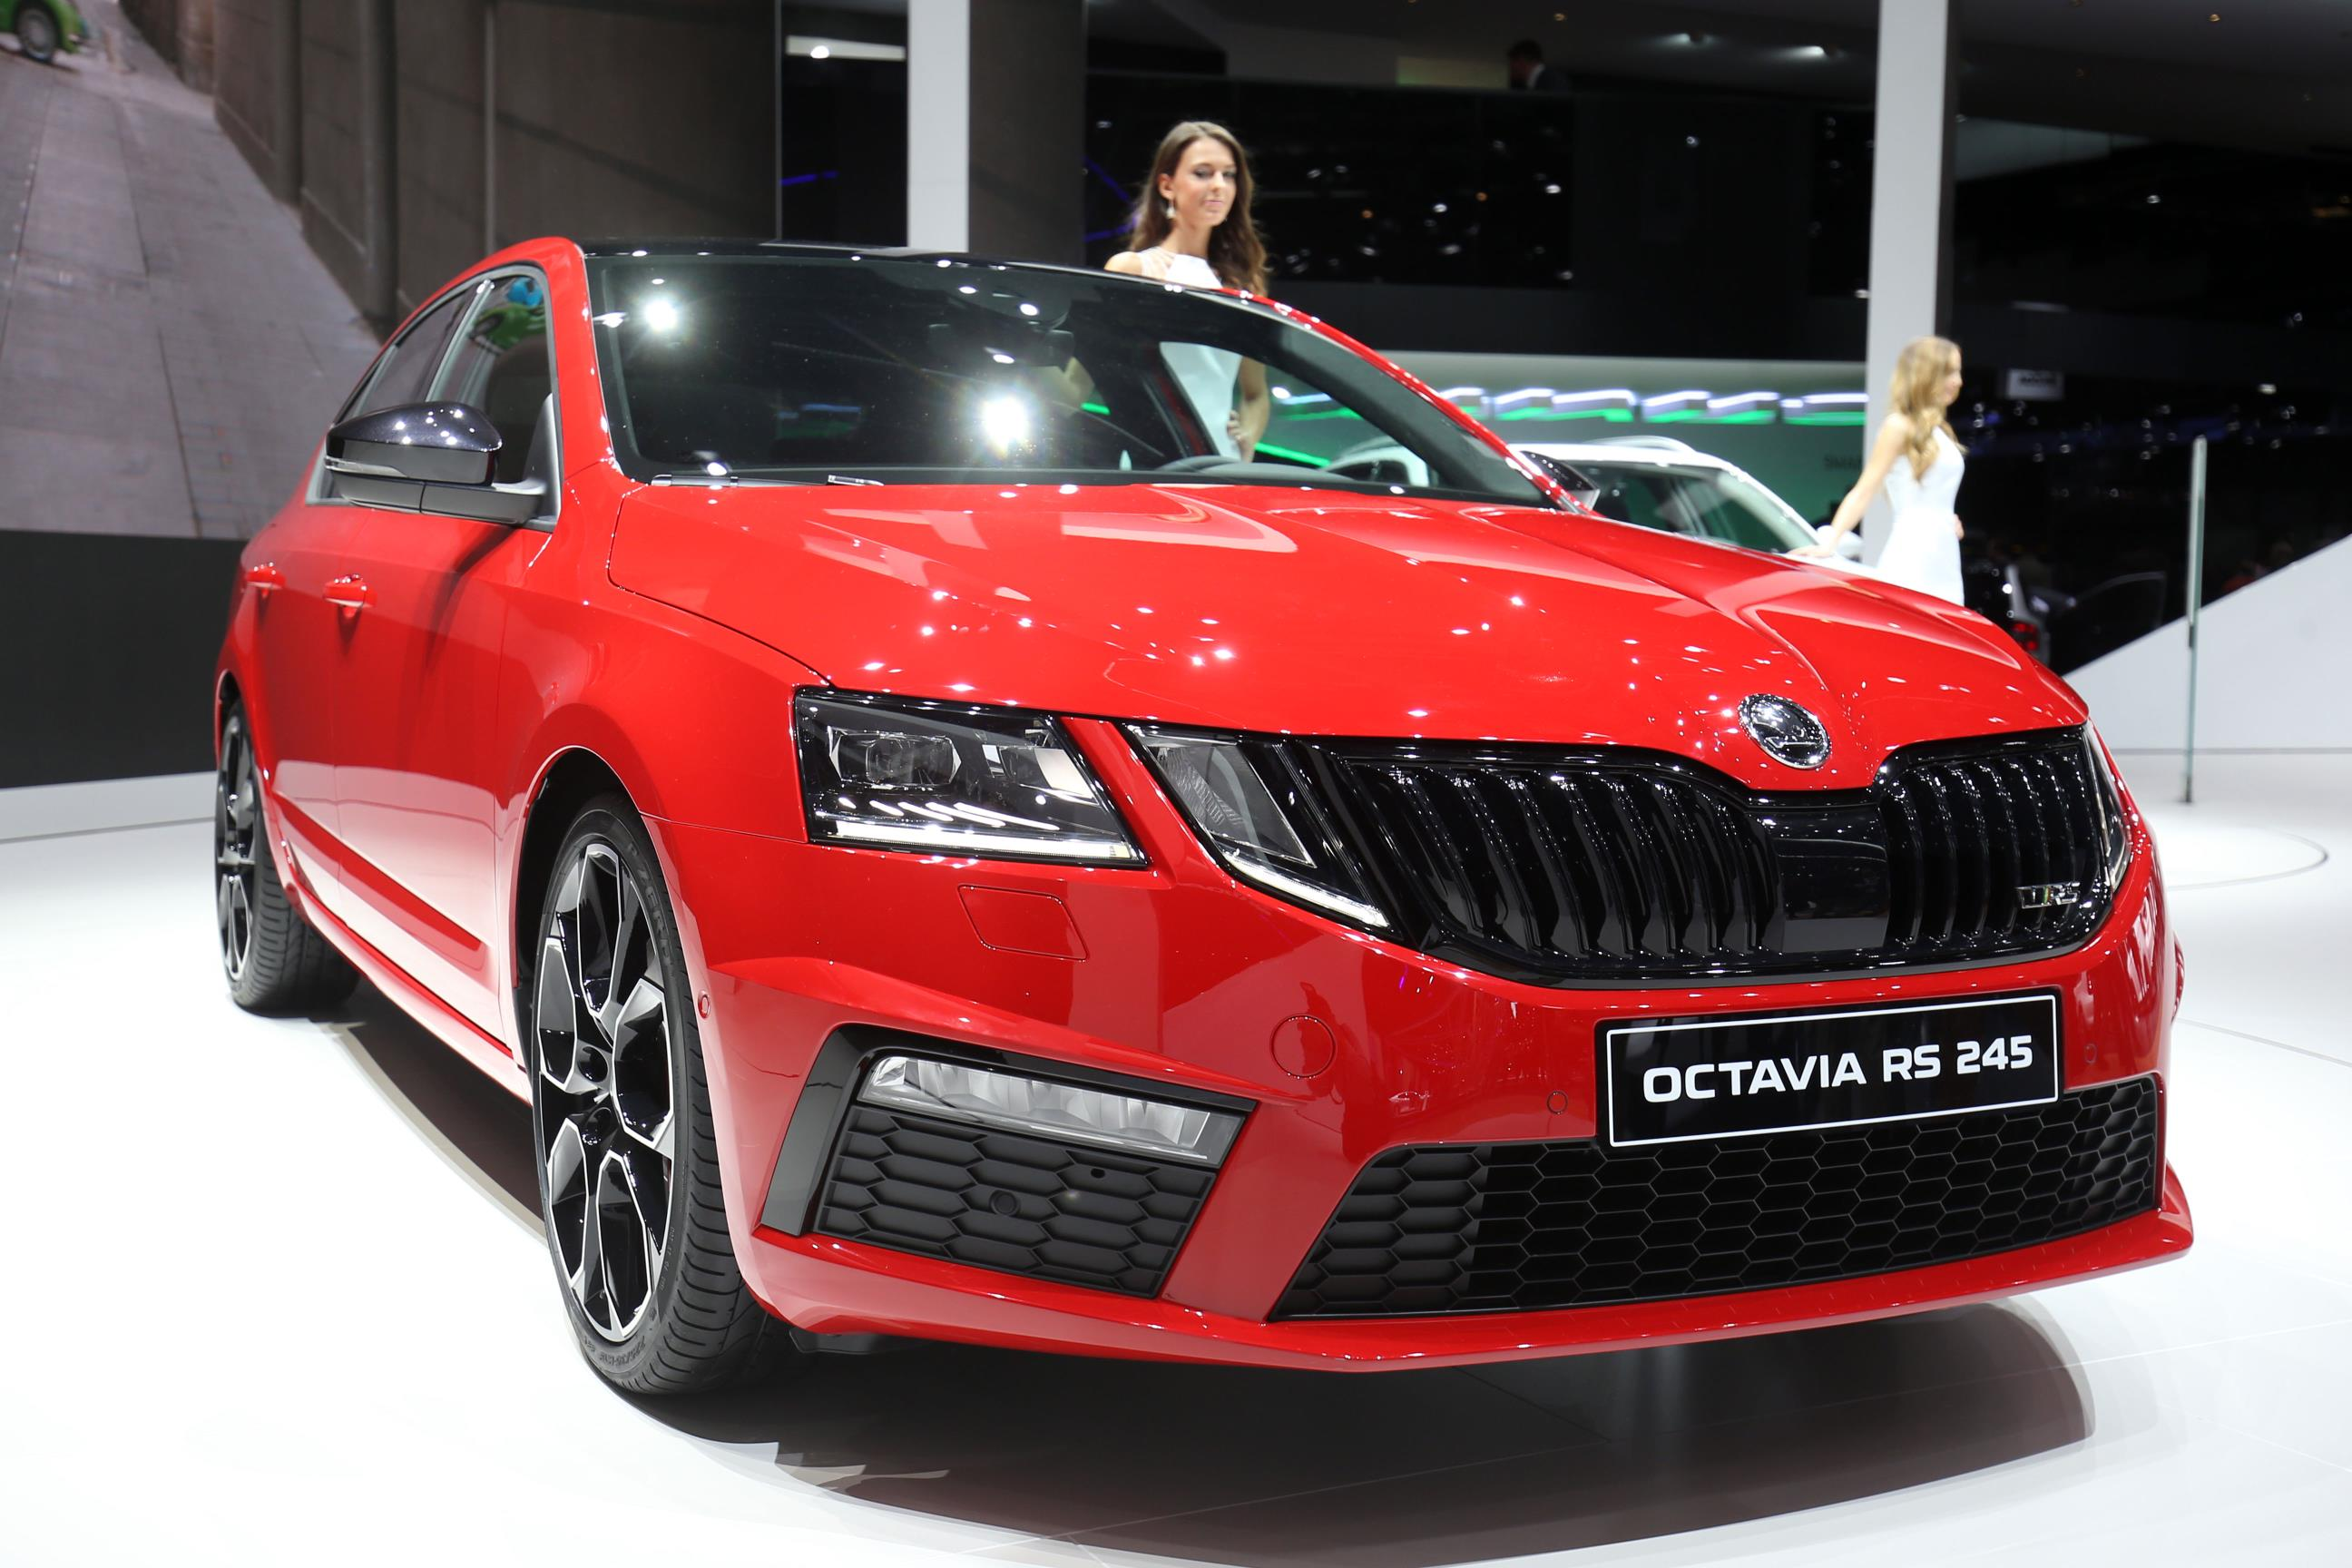 octavia rs 245 debuts in geneva skoda 39 s gti gets 7 speed dsg more power autoevolution. Black Bedroom Furniture Sets. Home Design Ideas